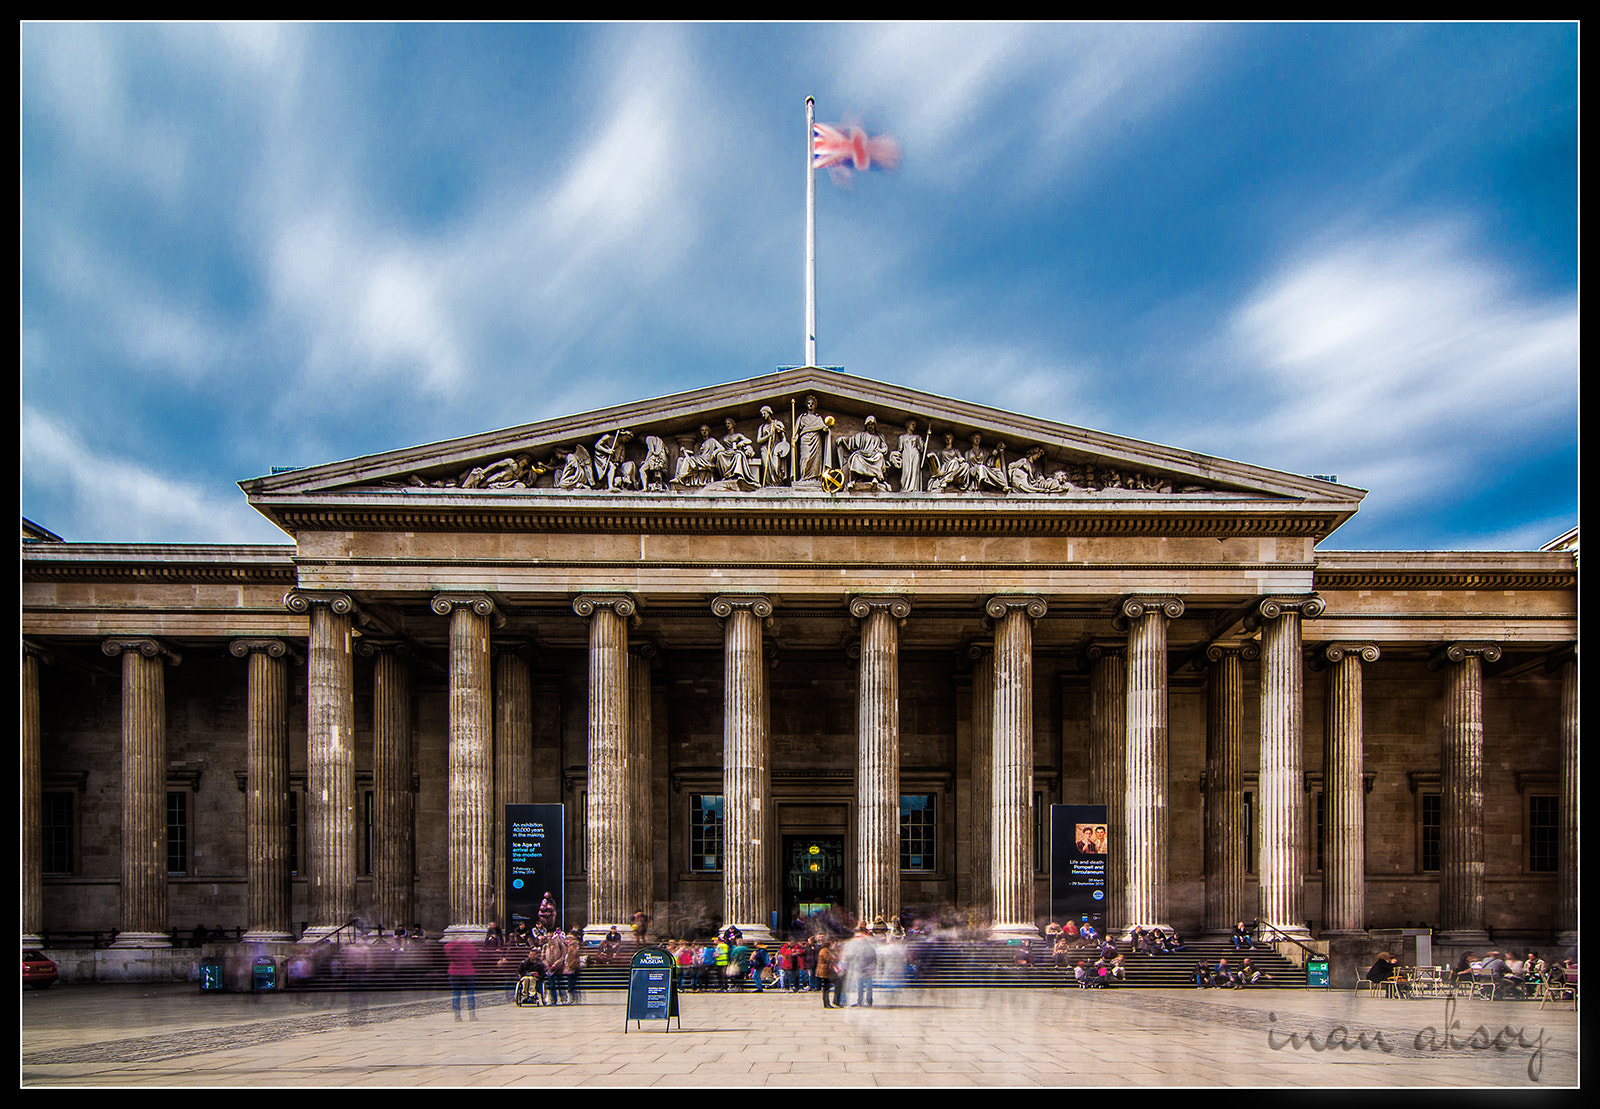 Photograph British Museum by Inan Aksoy on 500px